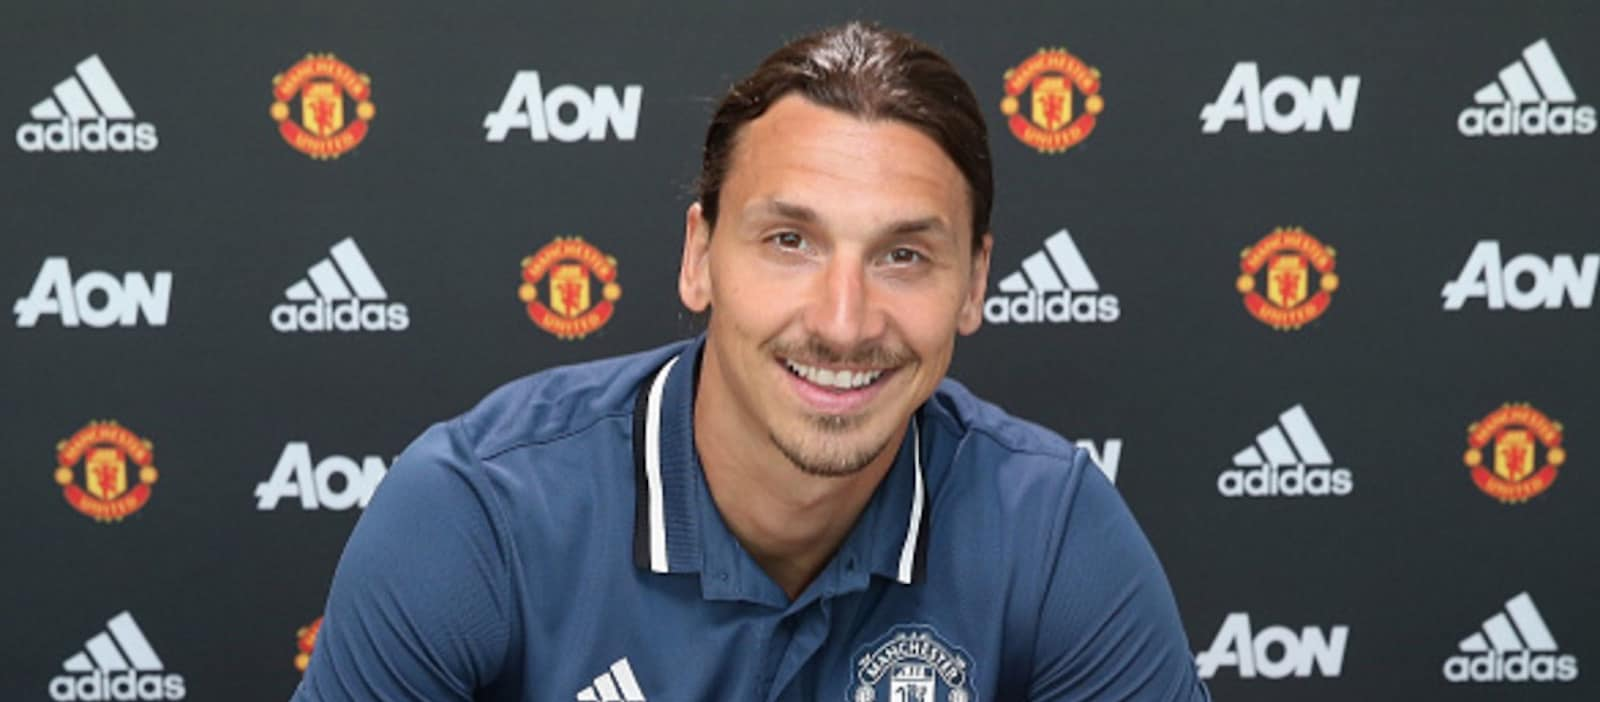 Zlatan Ibrahimovic discusses new Manchester United shirt number